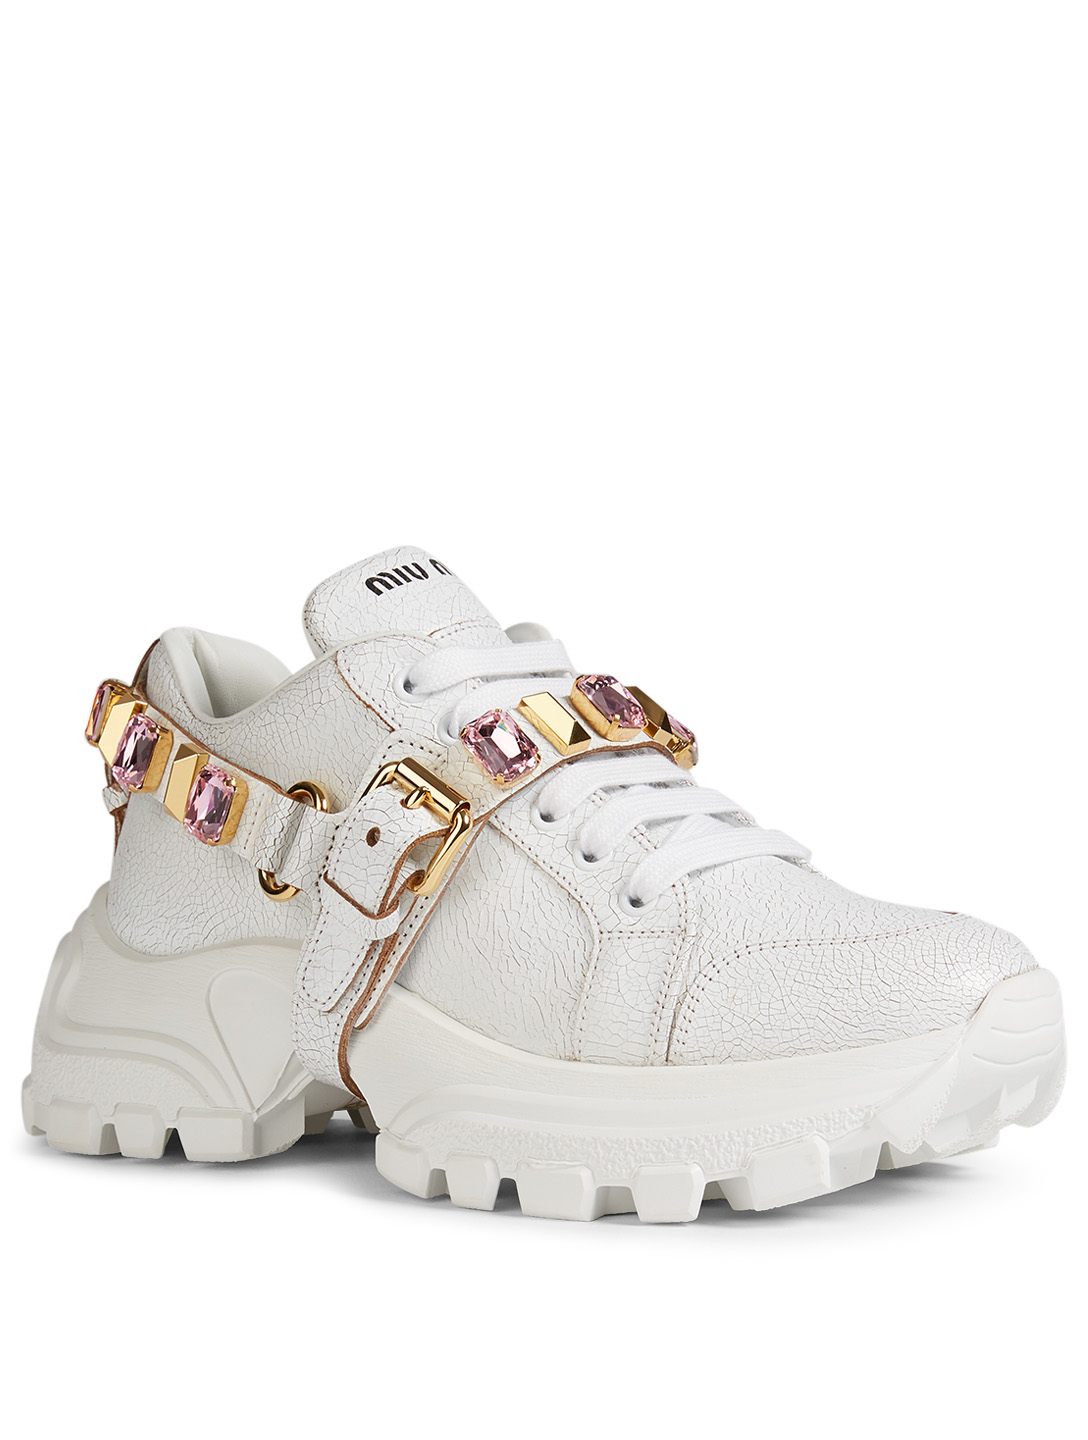 MIU MIU Cracked Leather Sneakers With Crystal Strap Women's Pink